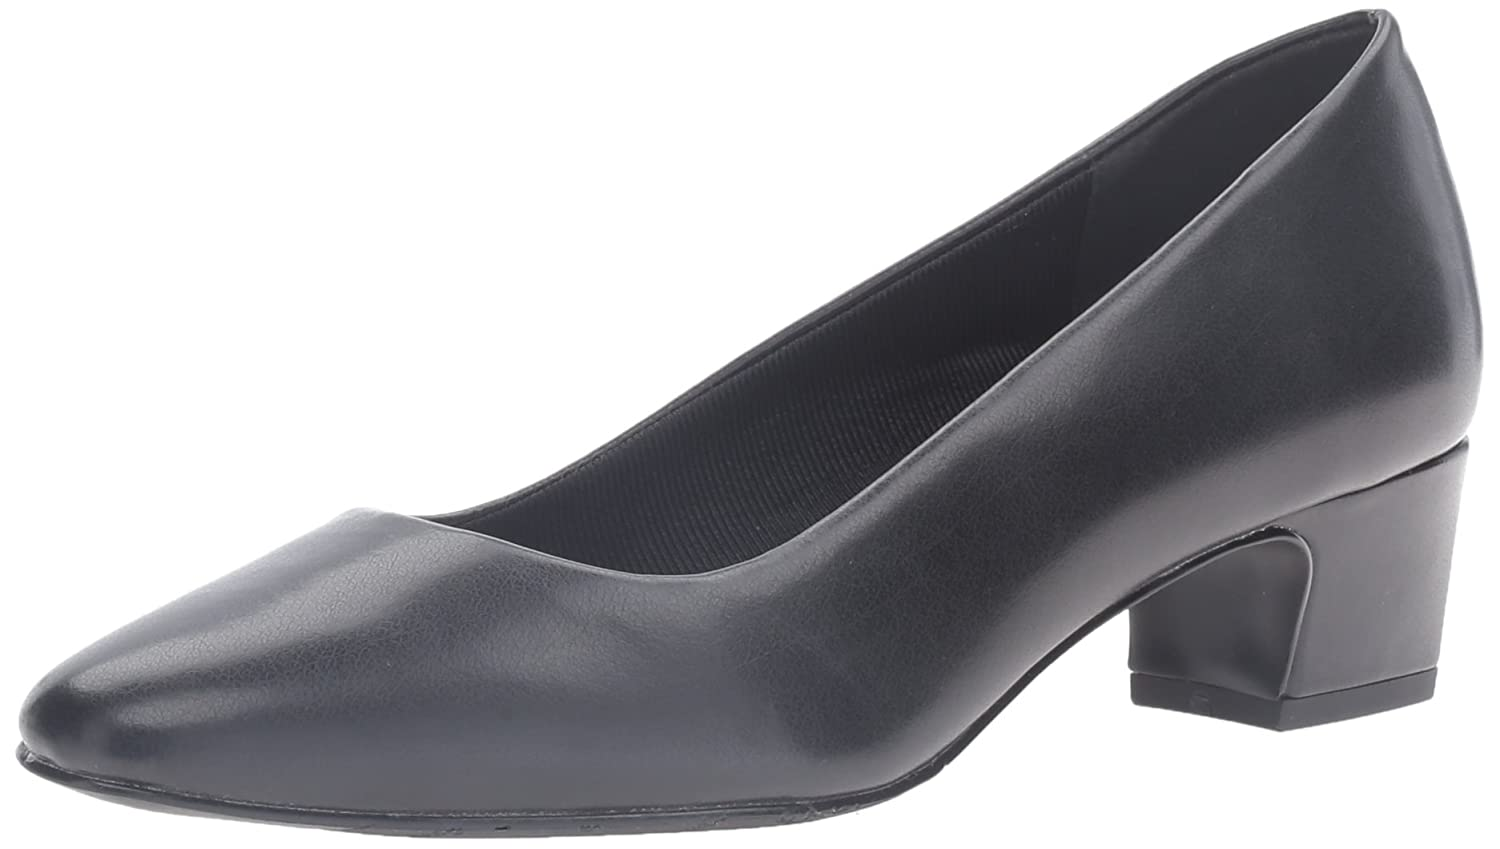 Easy Street Women's Prim Dress Pump B01HN76PFG 9.5 E US|Black